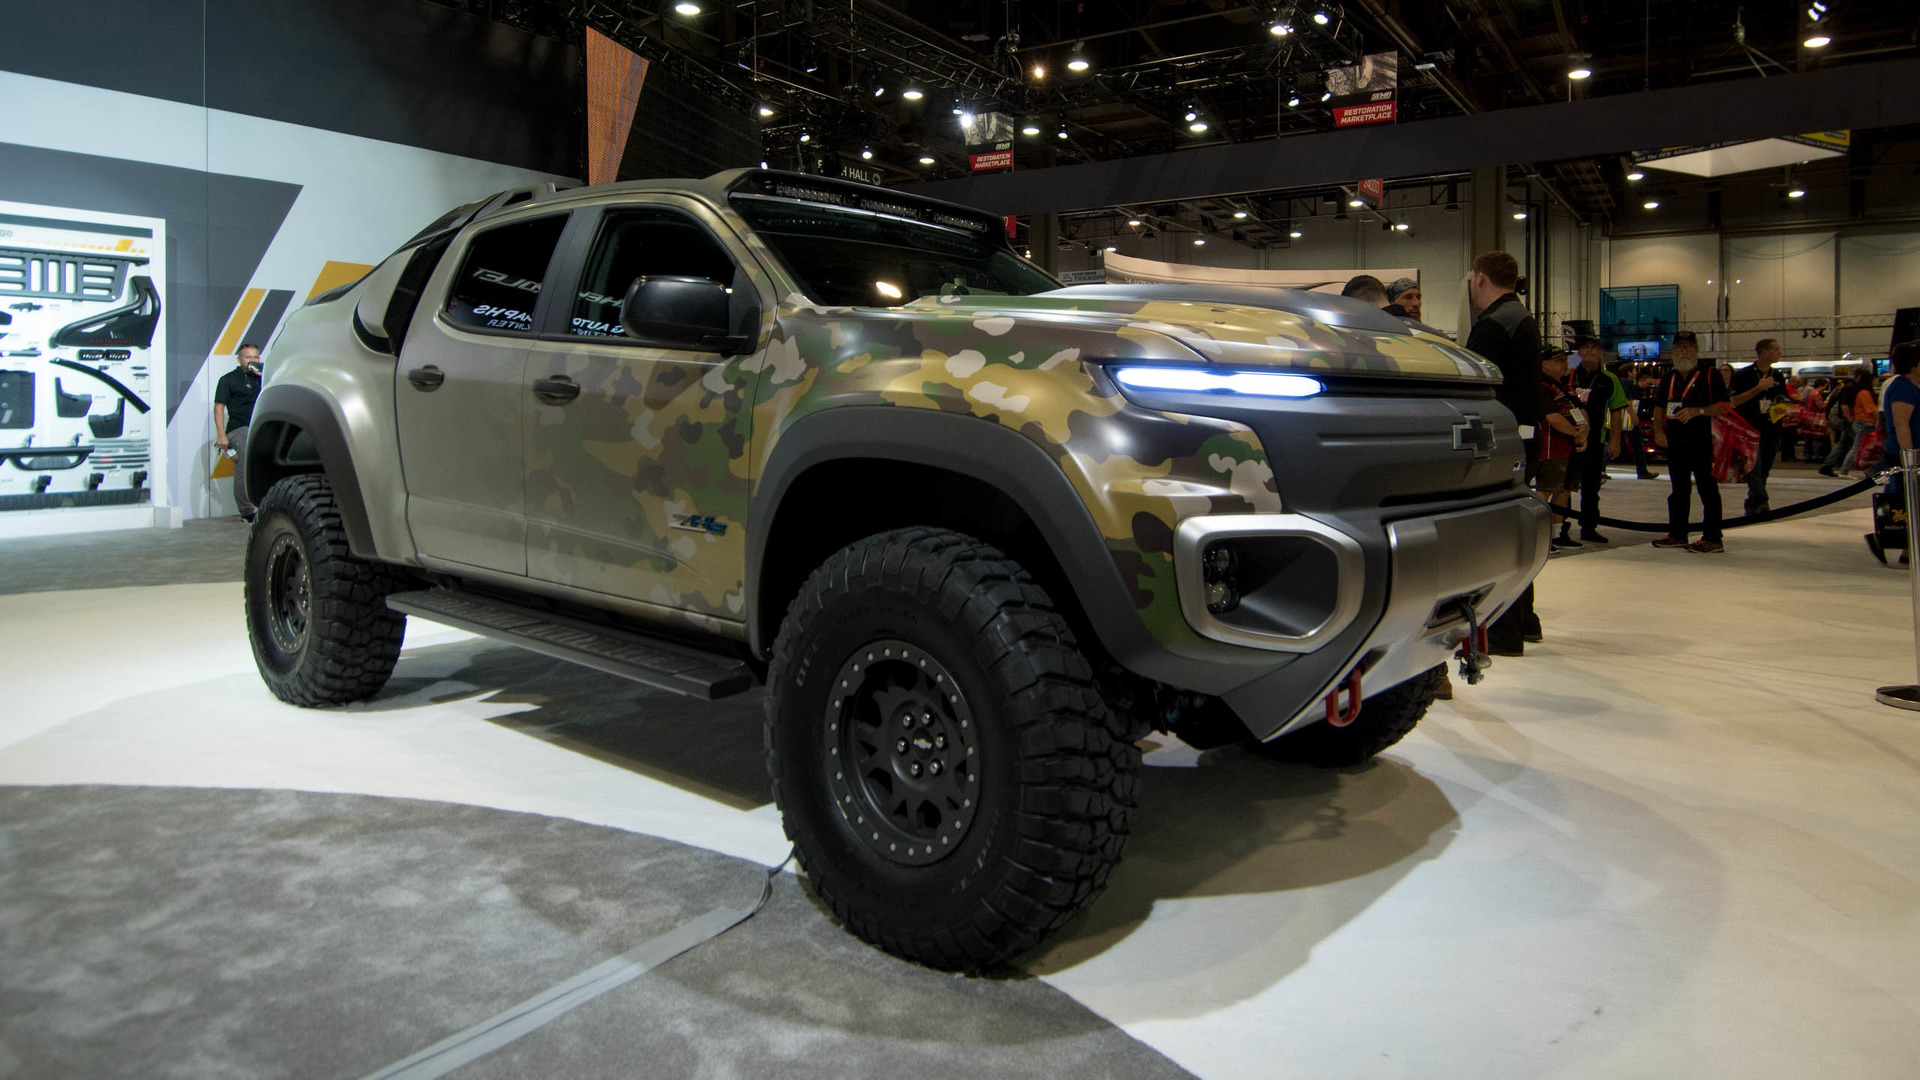 Chevy's hydrogen-powered Colorado is ready for Army testing